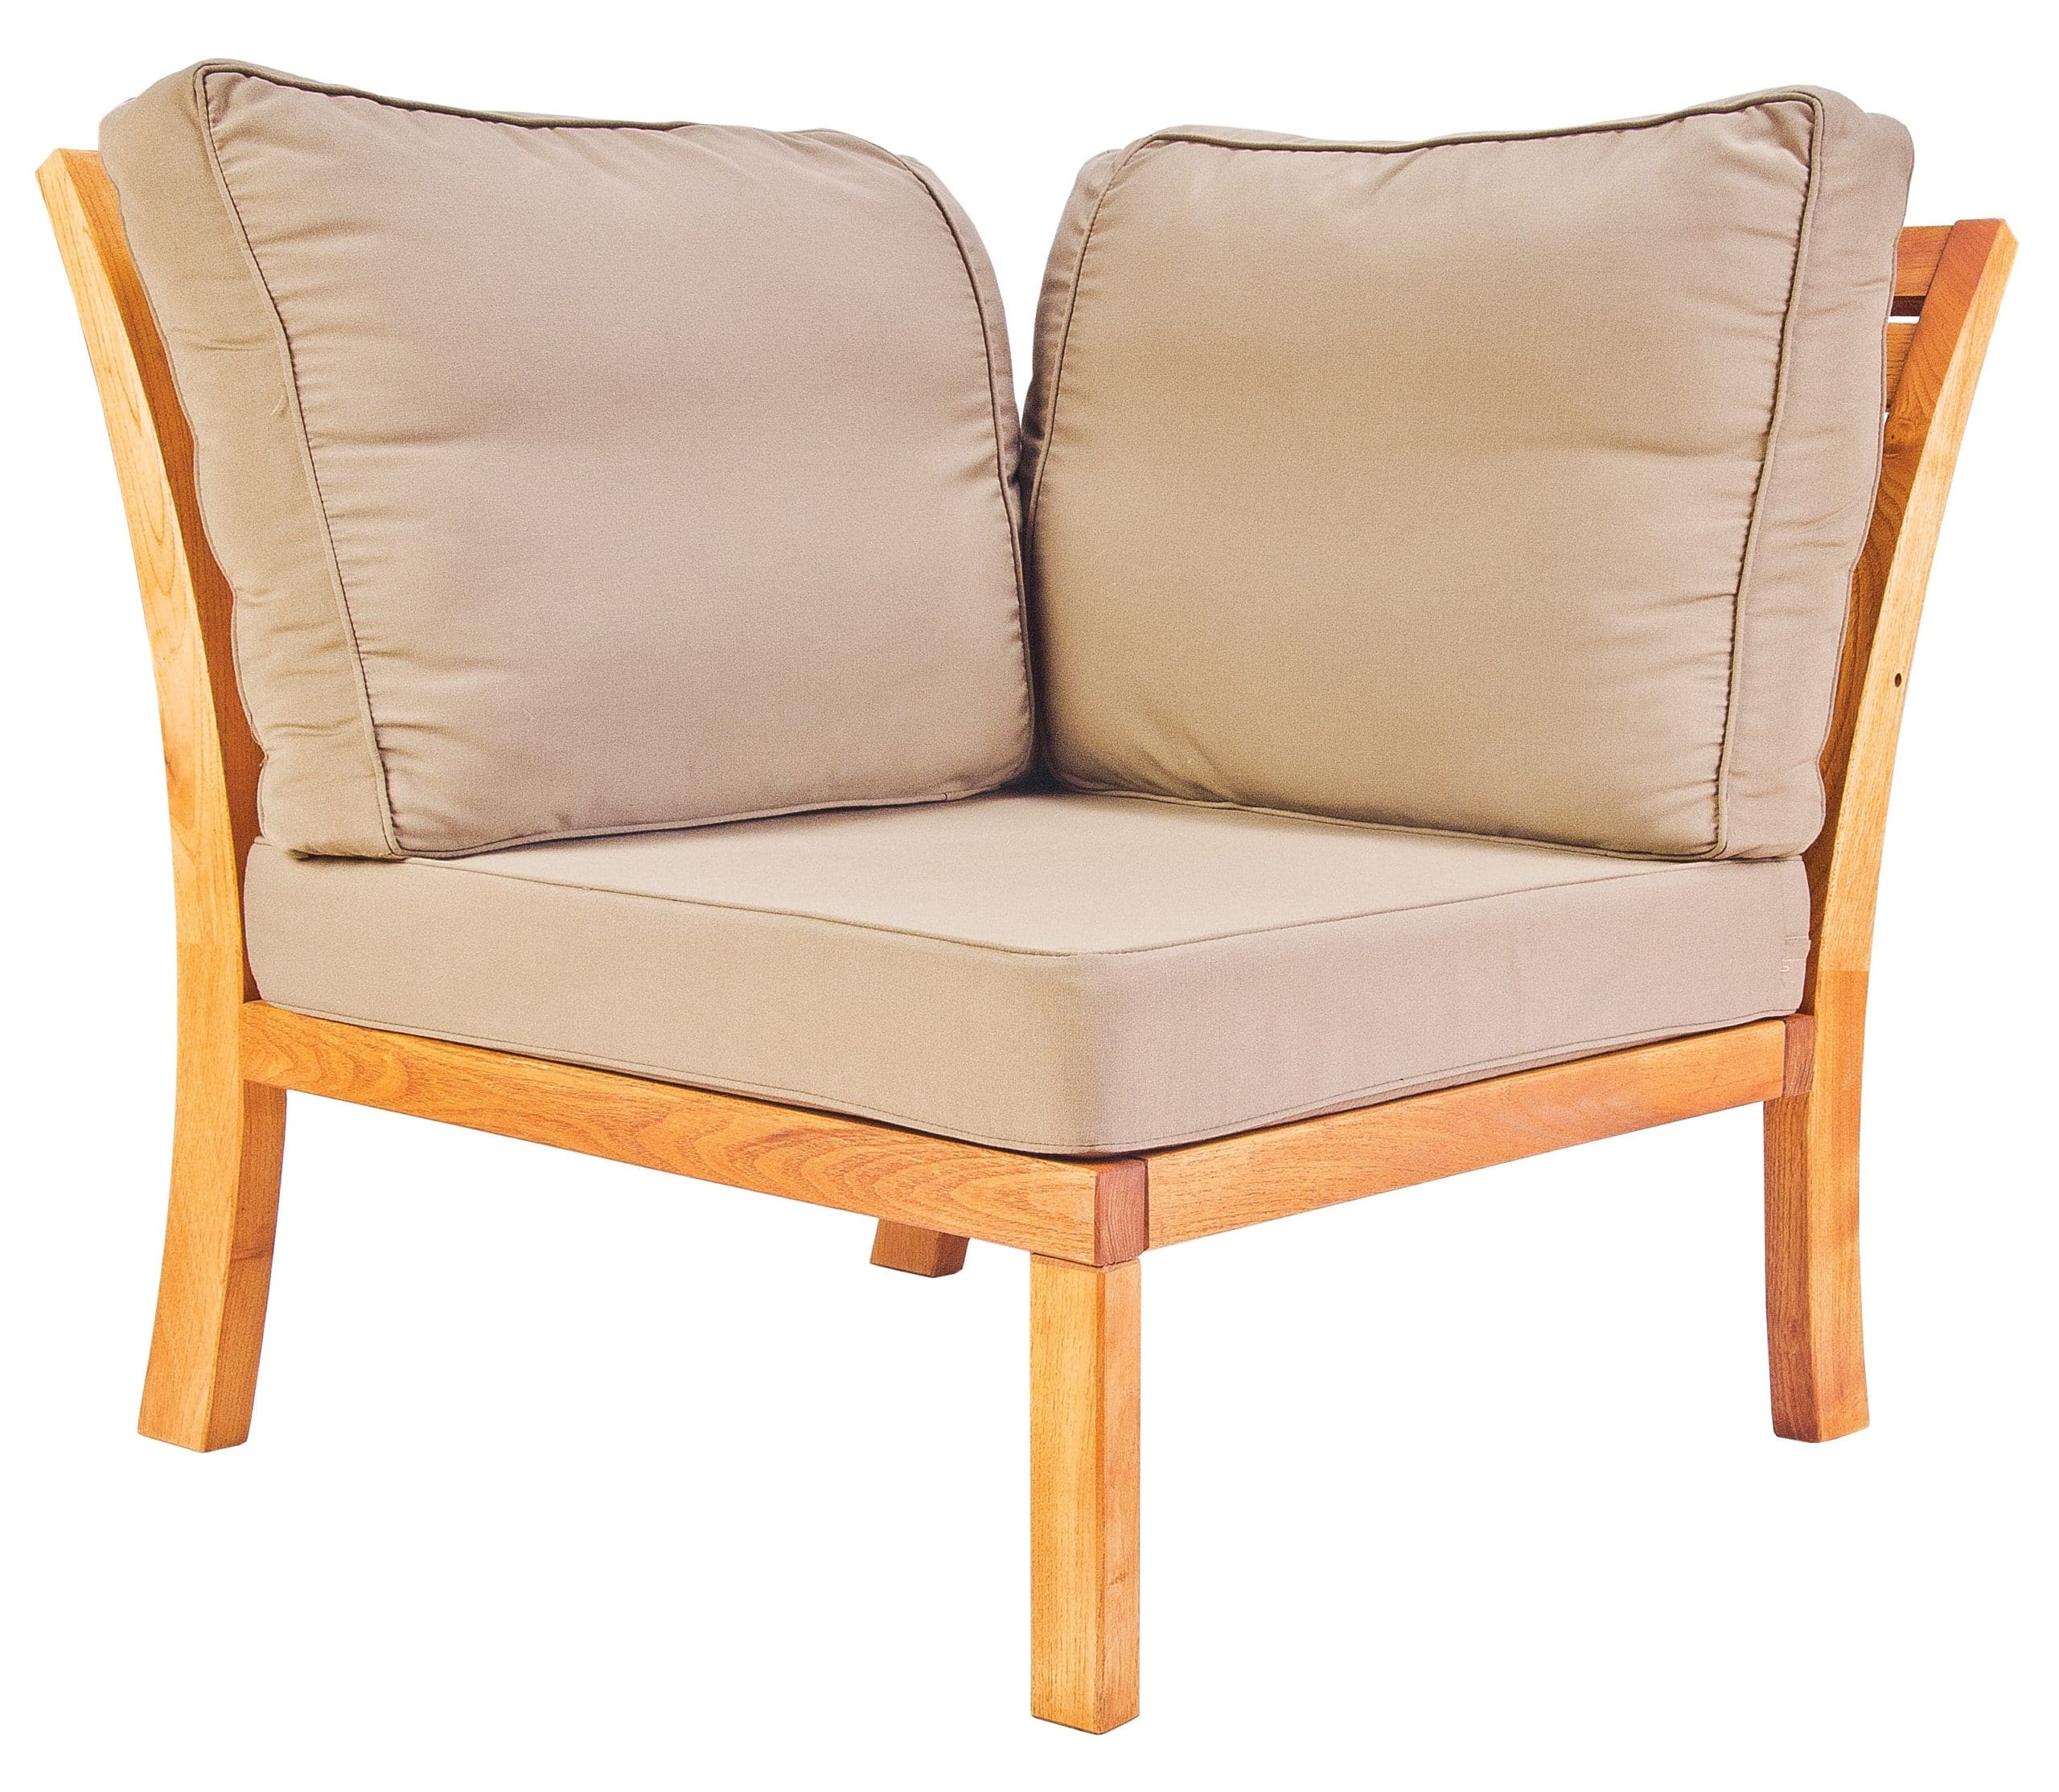 <p>Outdoor Furniture Leisure Collection Vista Corner Settee.</p> <p> </p> <p>Comfortable Patio Lounge Set Vista Corner Settee.</p> <p> </p> <p>Modern Leisure indoor or outdoor Hotel Coffee Lounge Set includes Armchairs, Chair, Corner Settee, Footstool and Table. Suits a variety of locations and settings including outdoor terraces, hotel reception areas and foyers with unlimited configuration options available.</p>